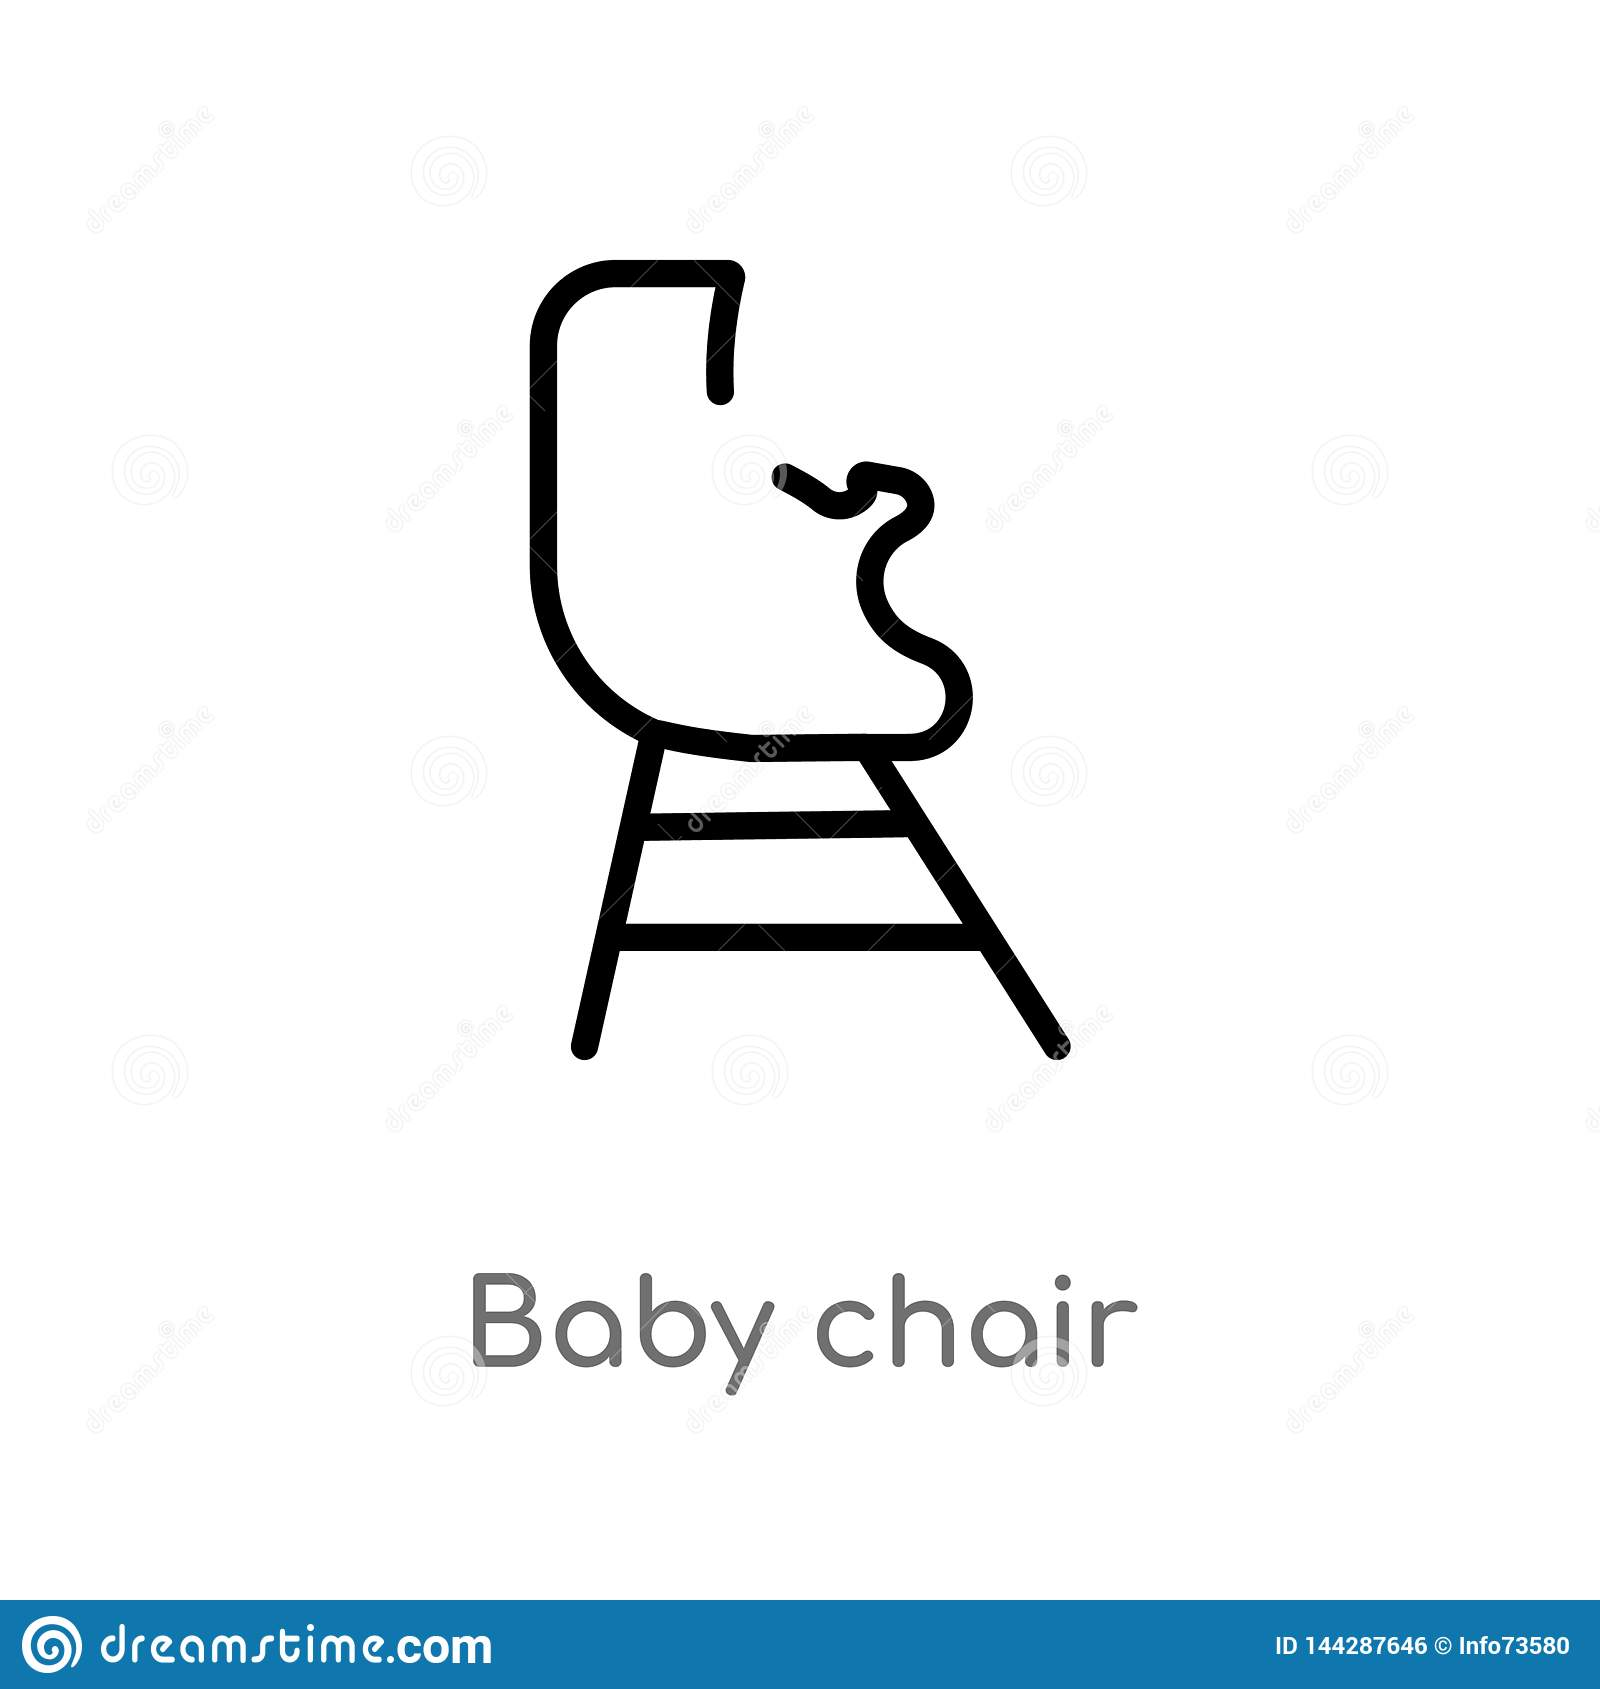 Outline Baby Chair Vector Icon Isolated Black Simple Line Element